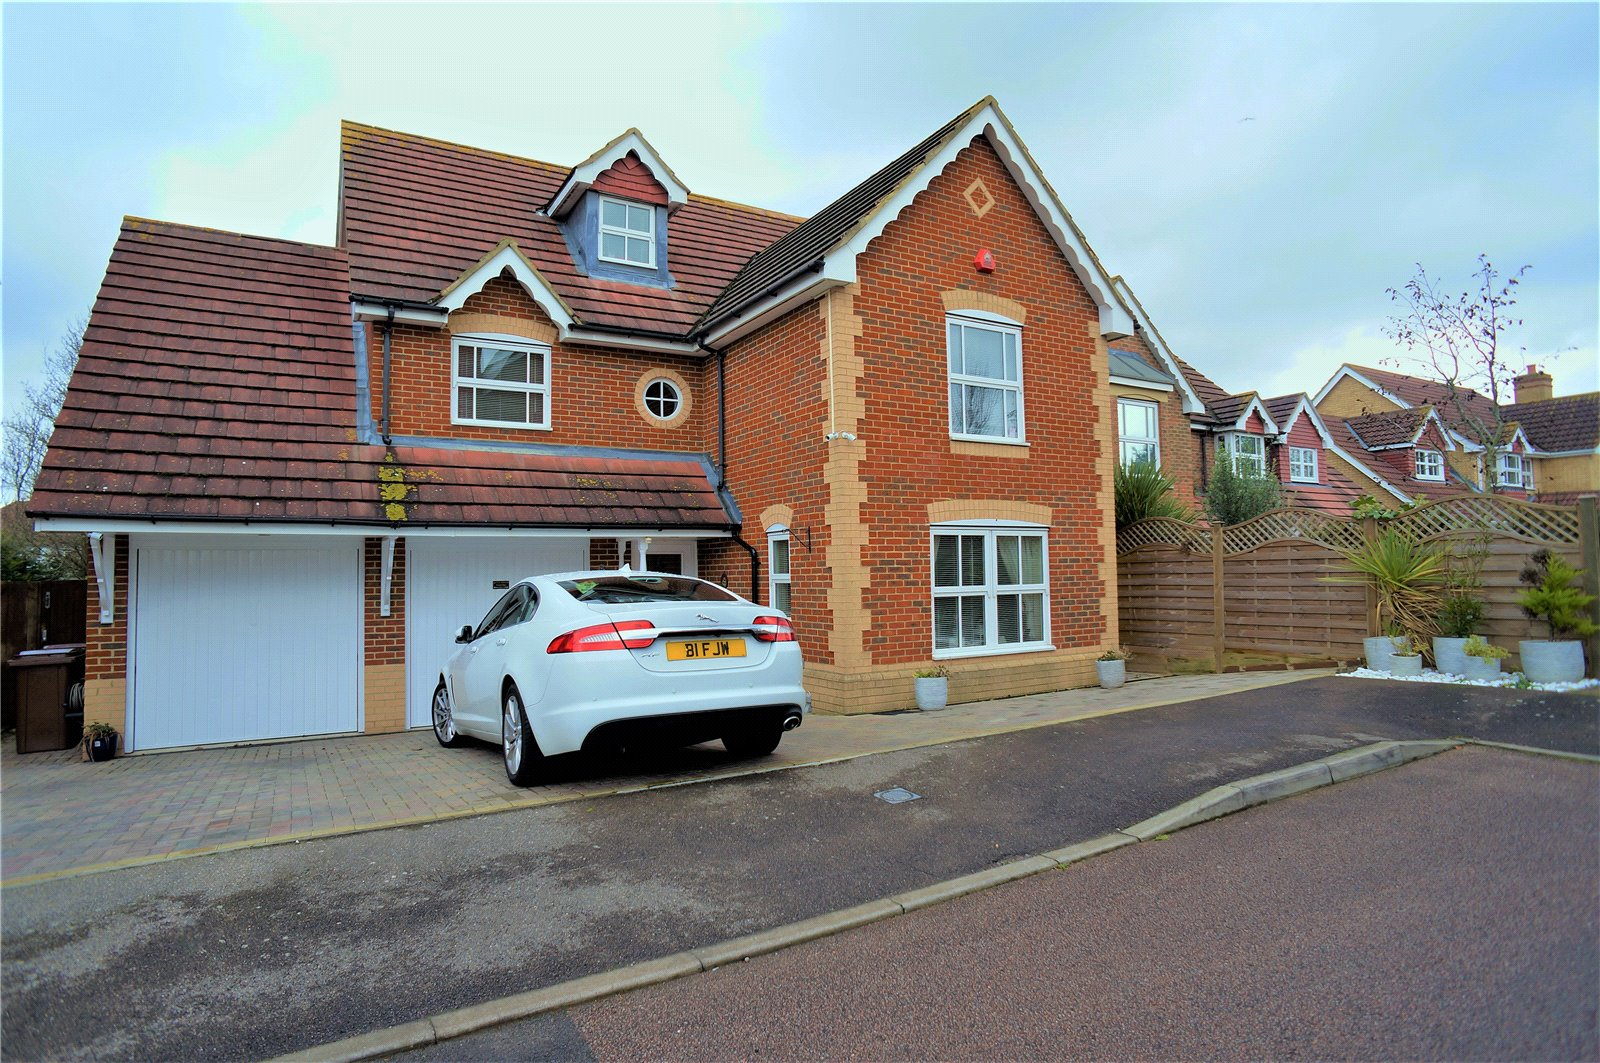 5 Bedrooms Detached House for sale in Grant Road, Wainscott, Rochester, Kent, ME3